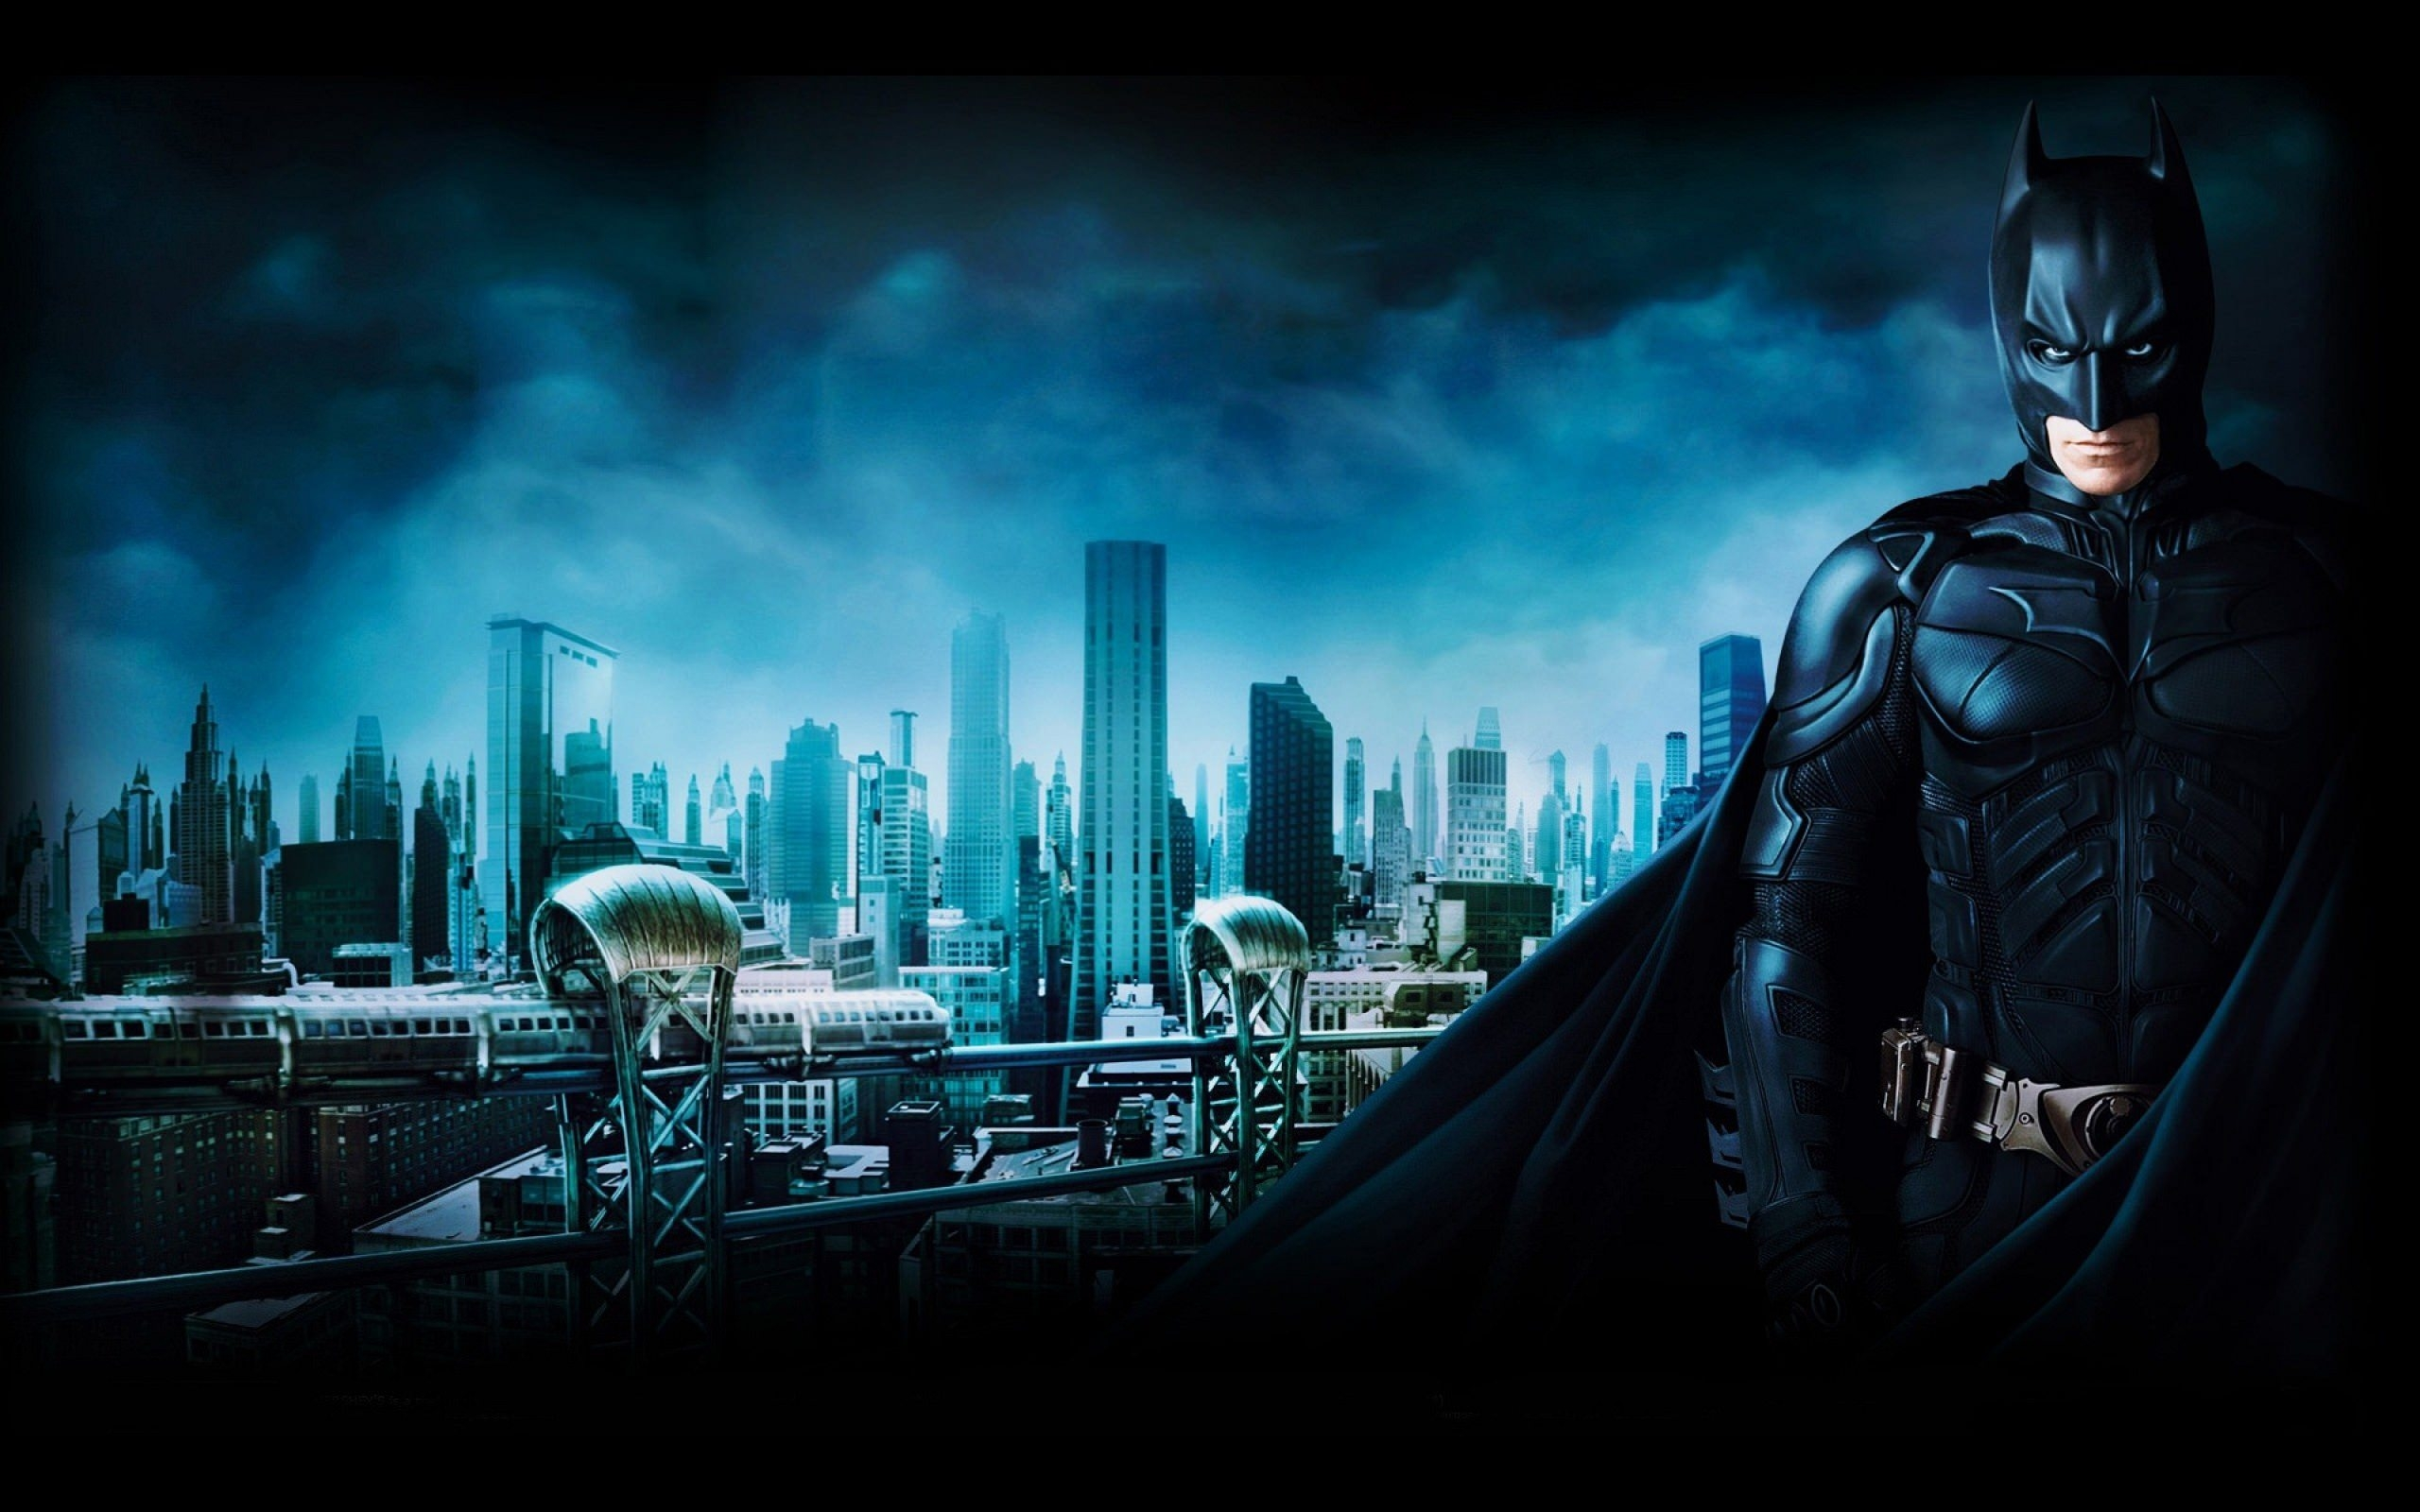 Wallpaper Calendar Superhero : Best hd superhero movie wallpapers freecreatives